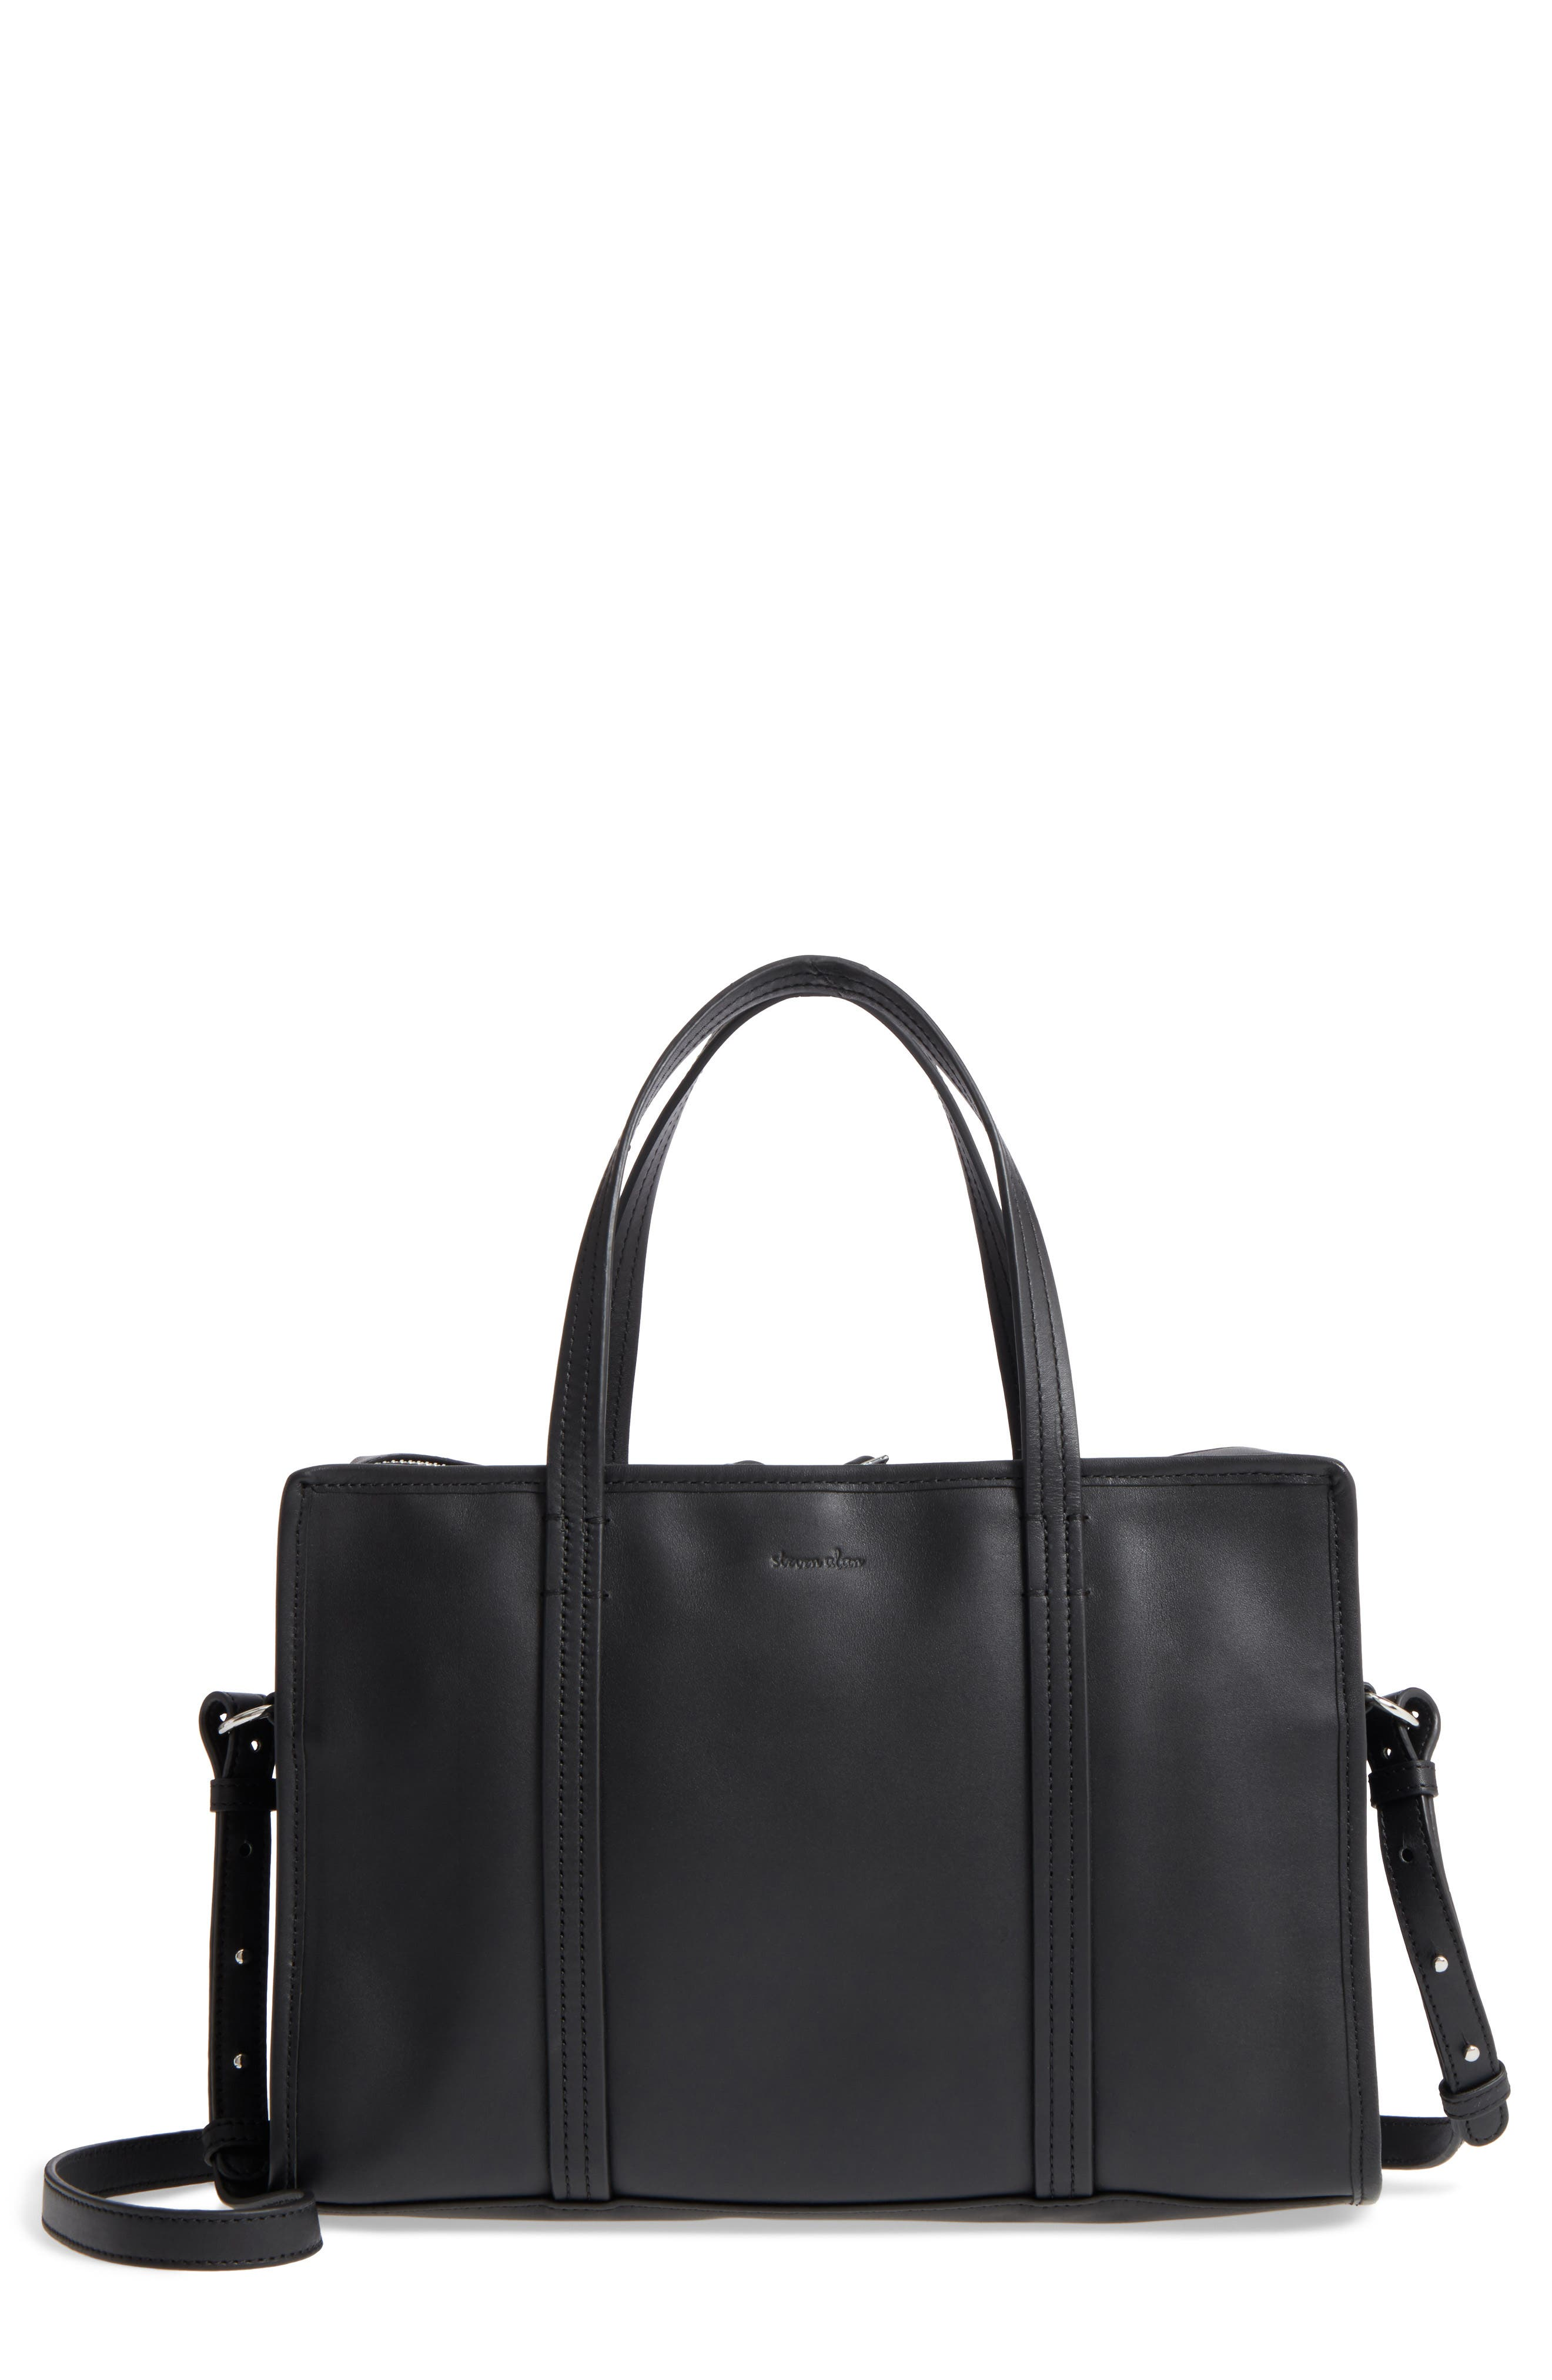 Main Image - Steven Alan Large Simone Calfskin Leather Satchel